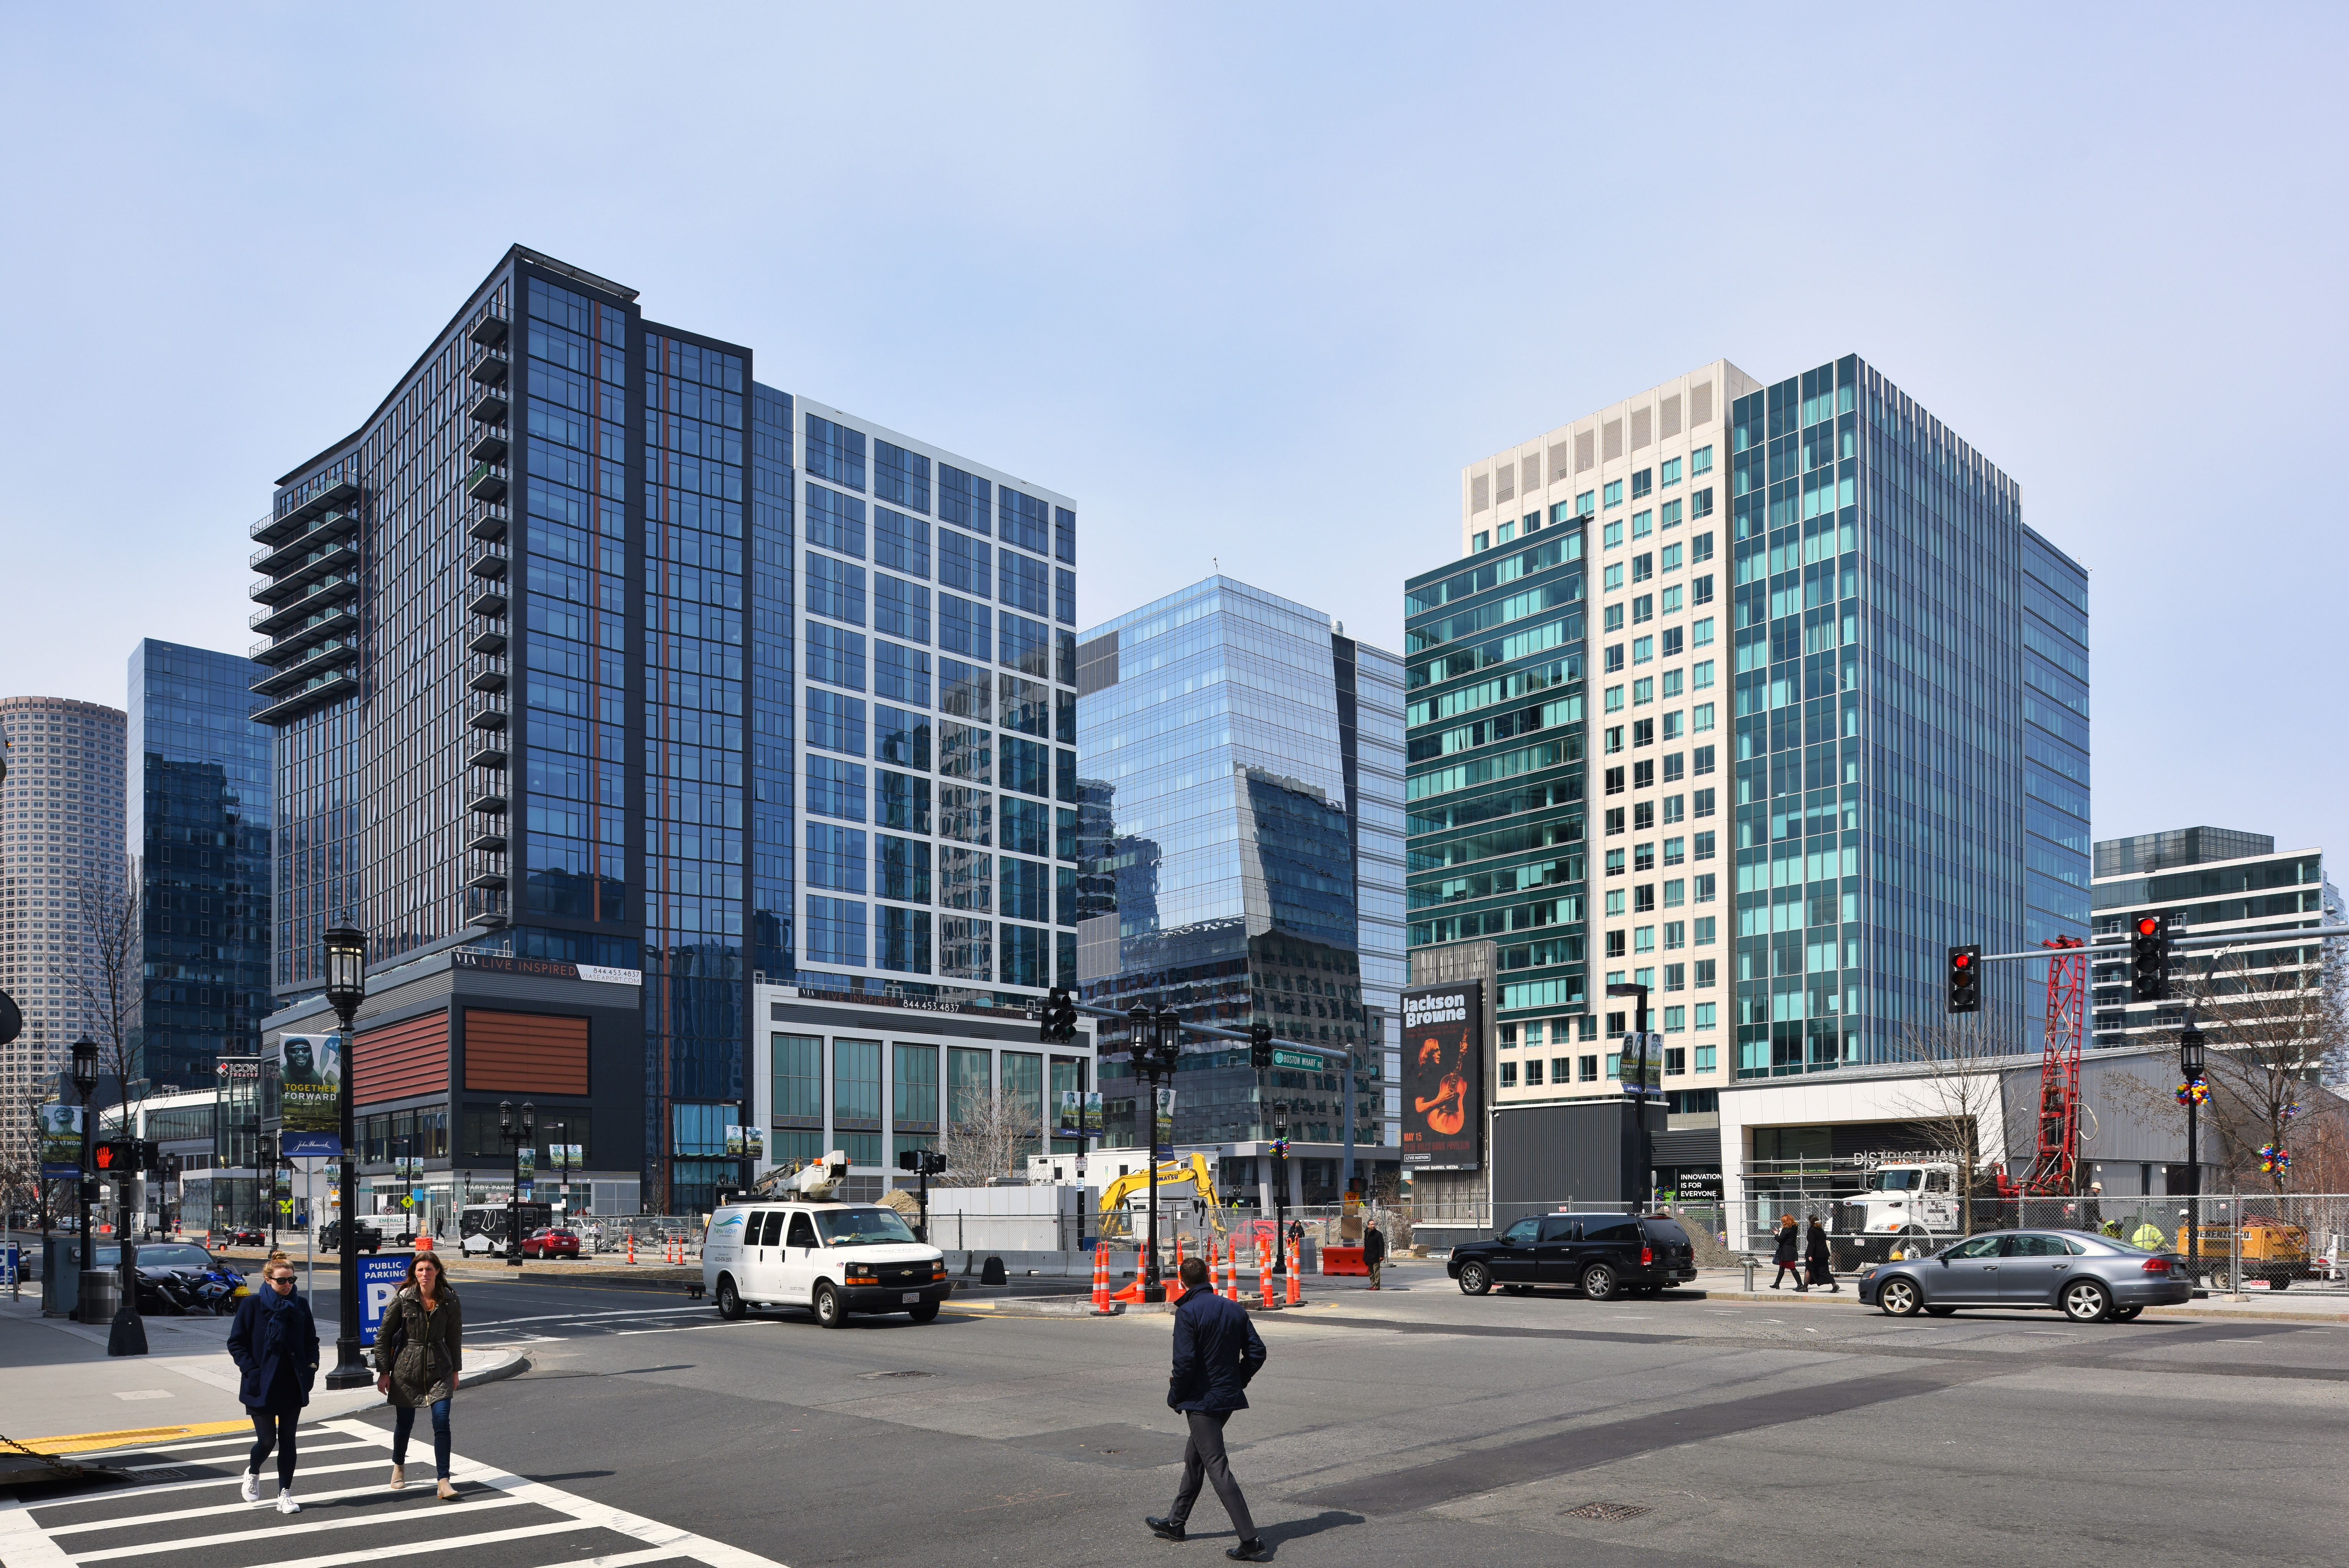 Glassy buildings in a busy business district.